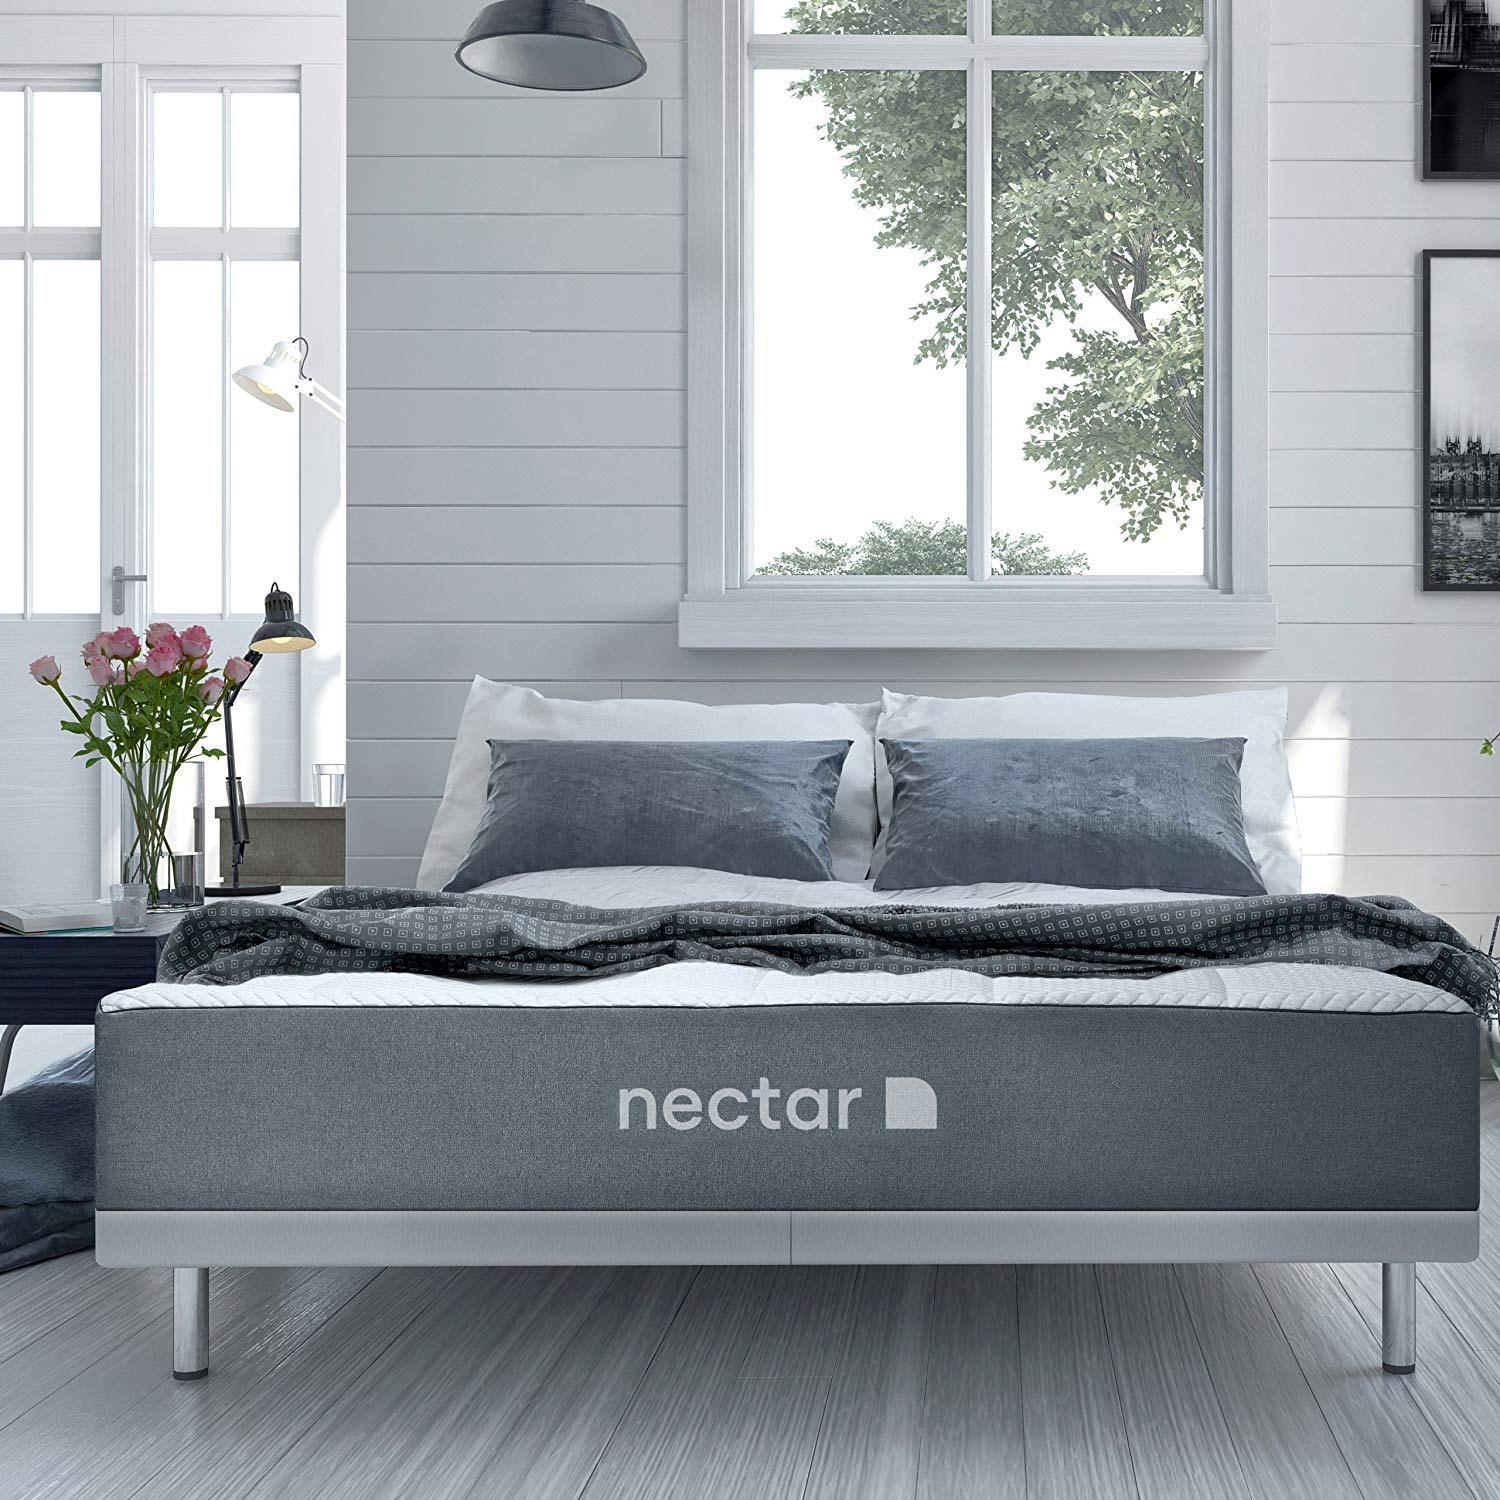 Nectar Full Mattress + 2 Free Pillows - Gel Memory Foam